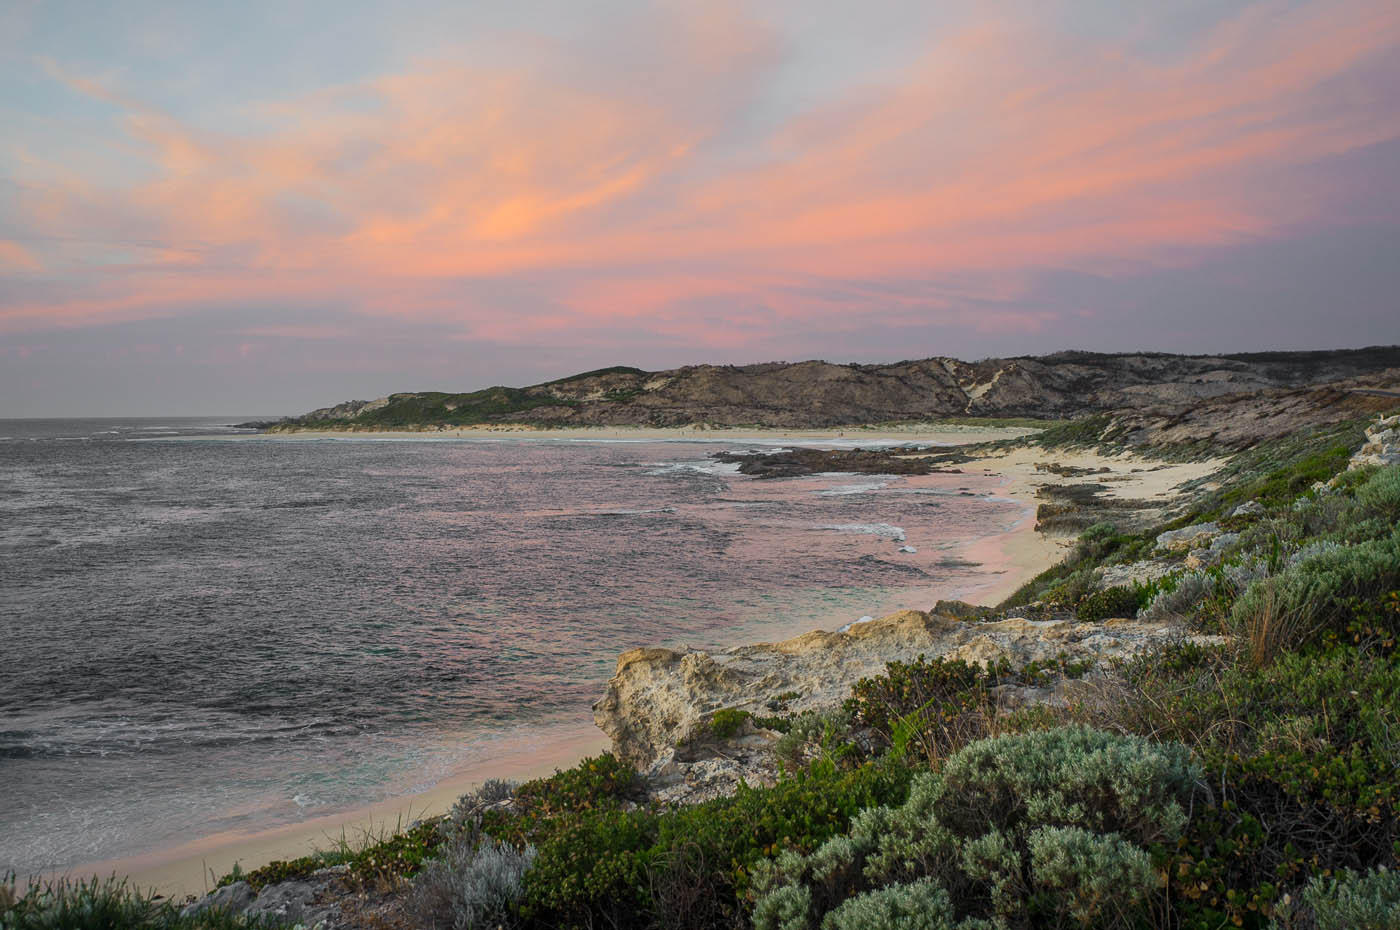 A view of the beach near Margaret River, Western Australia, at sunset